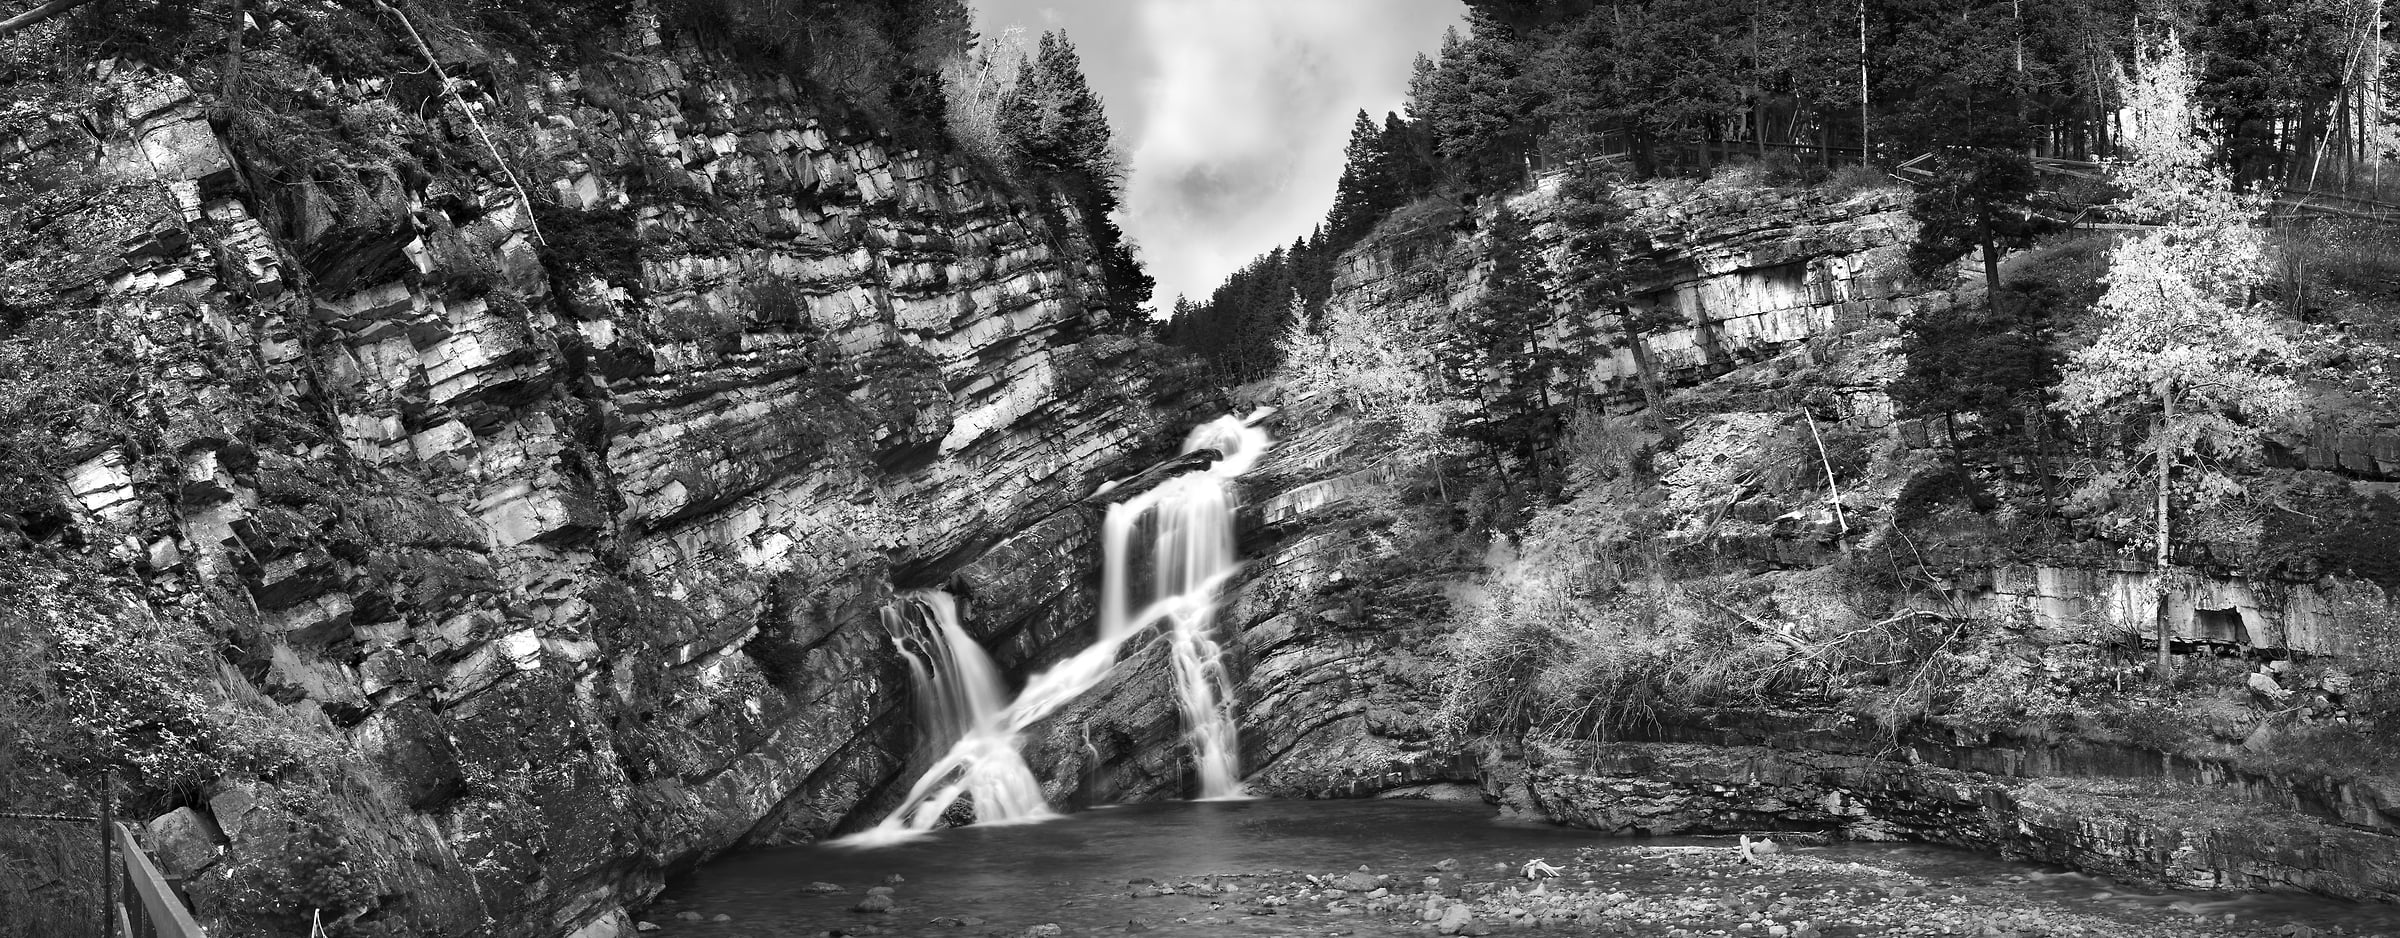 1,408 megapixels! A very high resolution, large-format VAST photo print of Cameron Falls waterfall in Waterton Lakes National Park; fine art nature photograph created by Steven Webster in Alberta, Canada